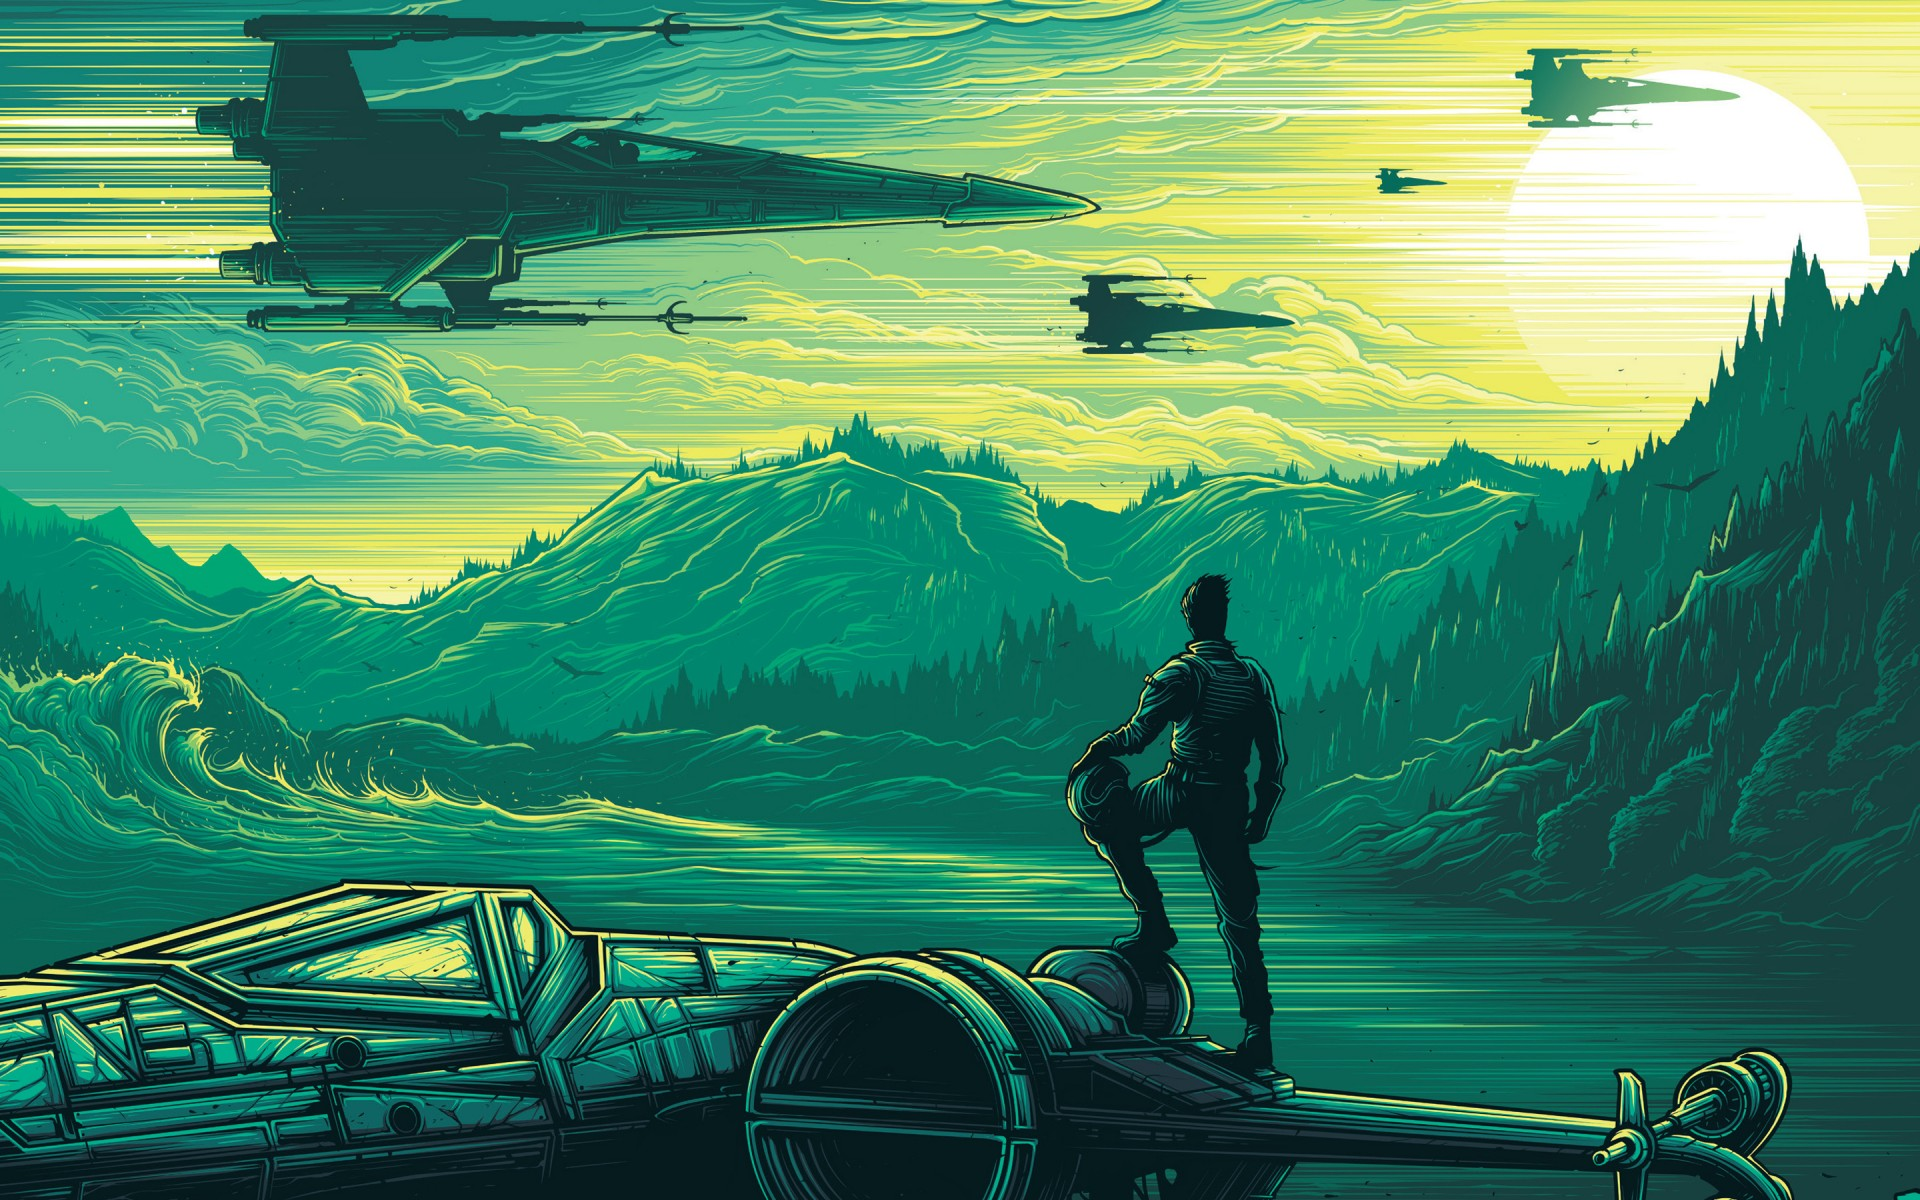 Star Wars The Force Awakens IMAX Wallpapers HD Wallpapers ID 16525